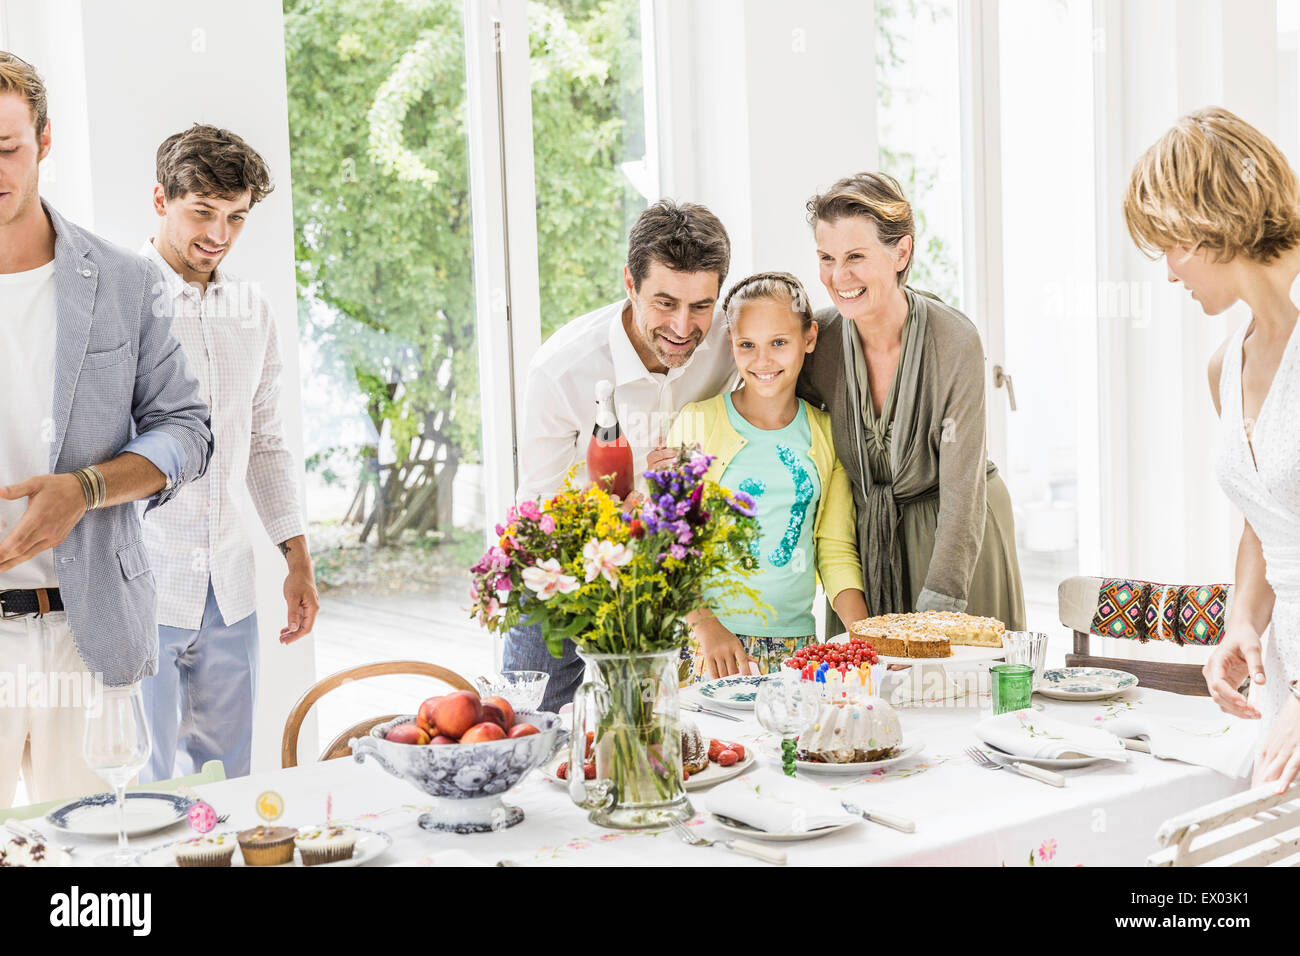 Family preparing champagne for party in dining room Stock Photo